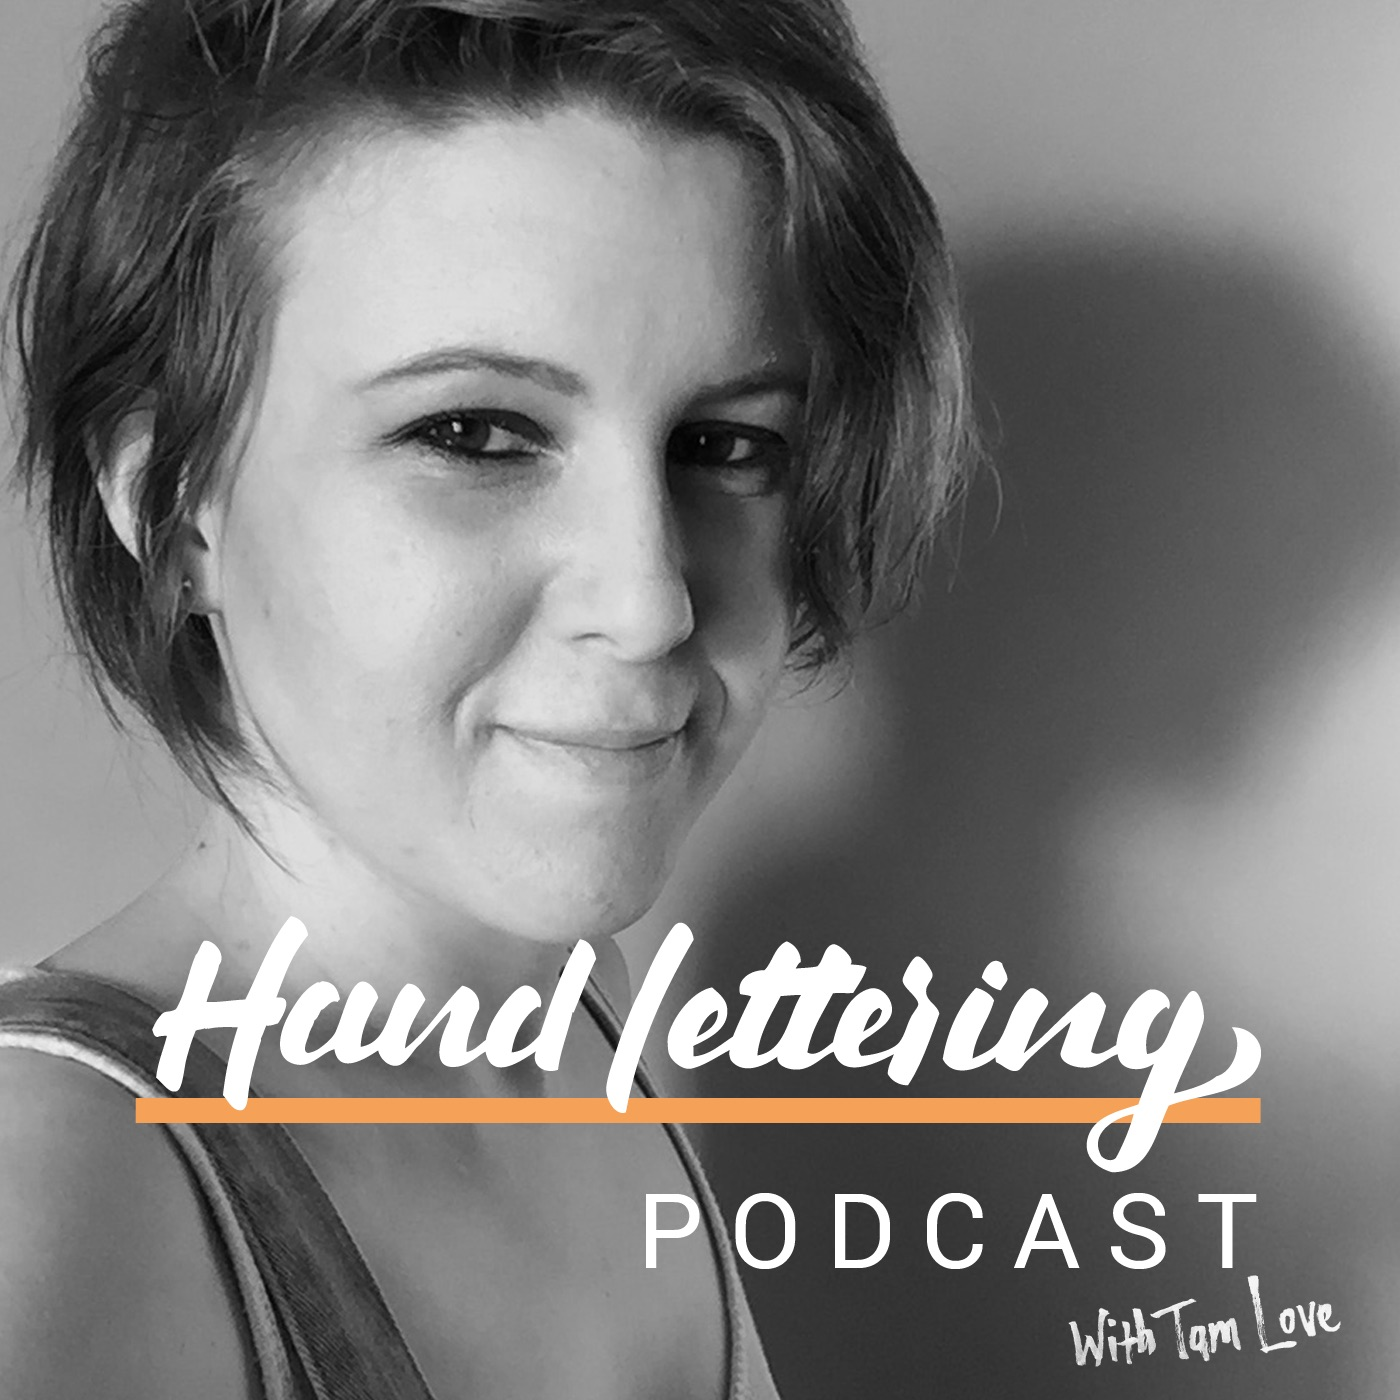 Hand Lettering Podcast